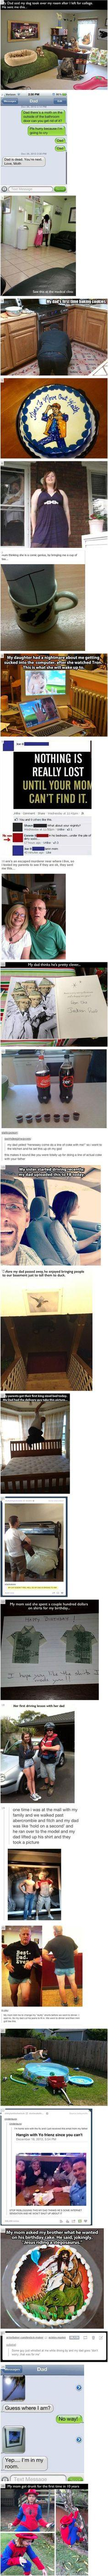 Parenting wins. these are so awesome. my favorite is the dad with the armpit photo bomb *dies laughing*: Funny Parenting, Funny Parents, Dies Laughing, Parenting Done Right, Funny Stuff, Hilarious Parents, Parenting Win, Parents Hahaha, Funny Kids